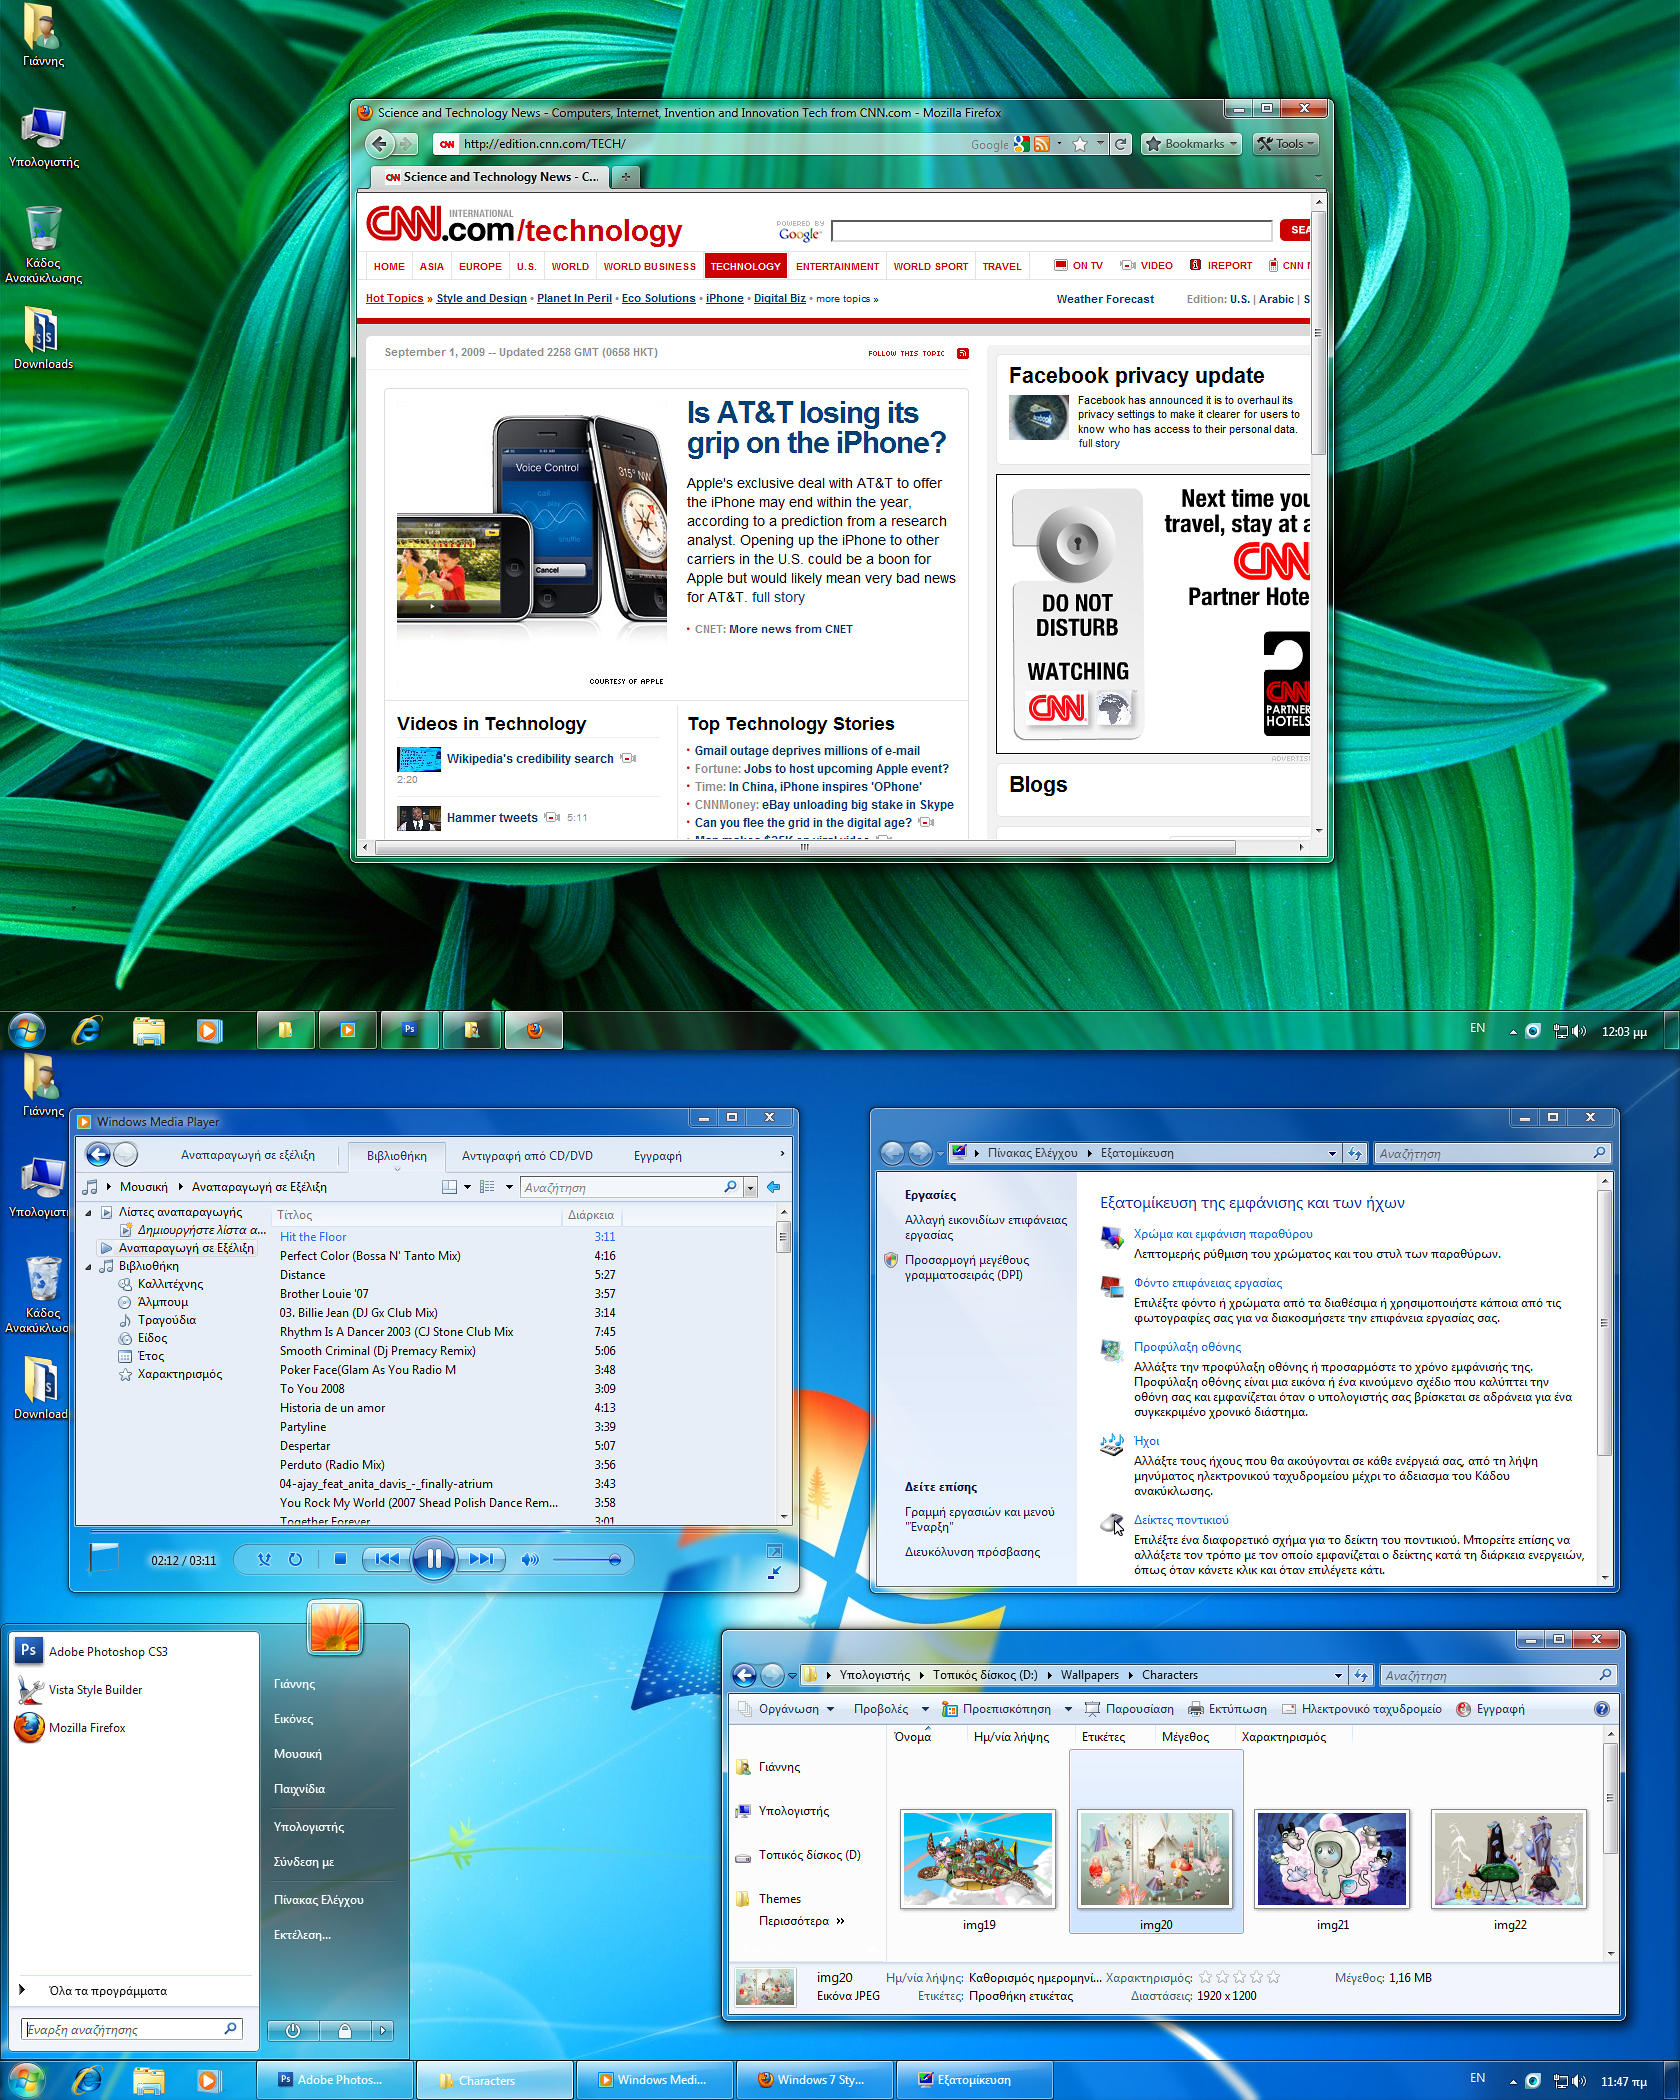 Windows 7 Style For Vista by giannisgx89